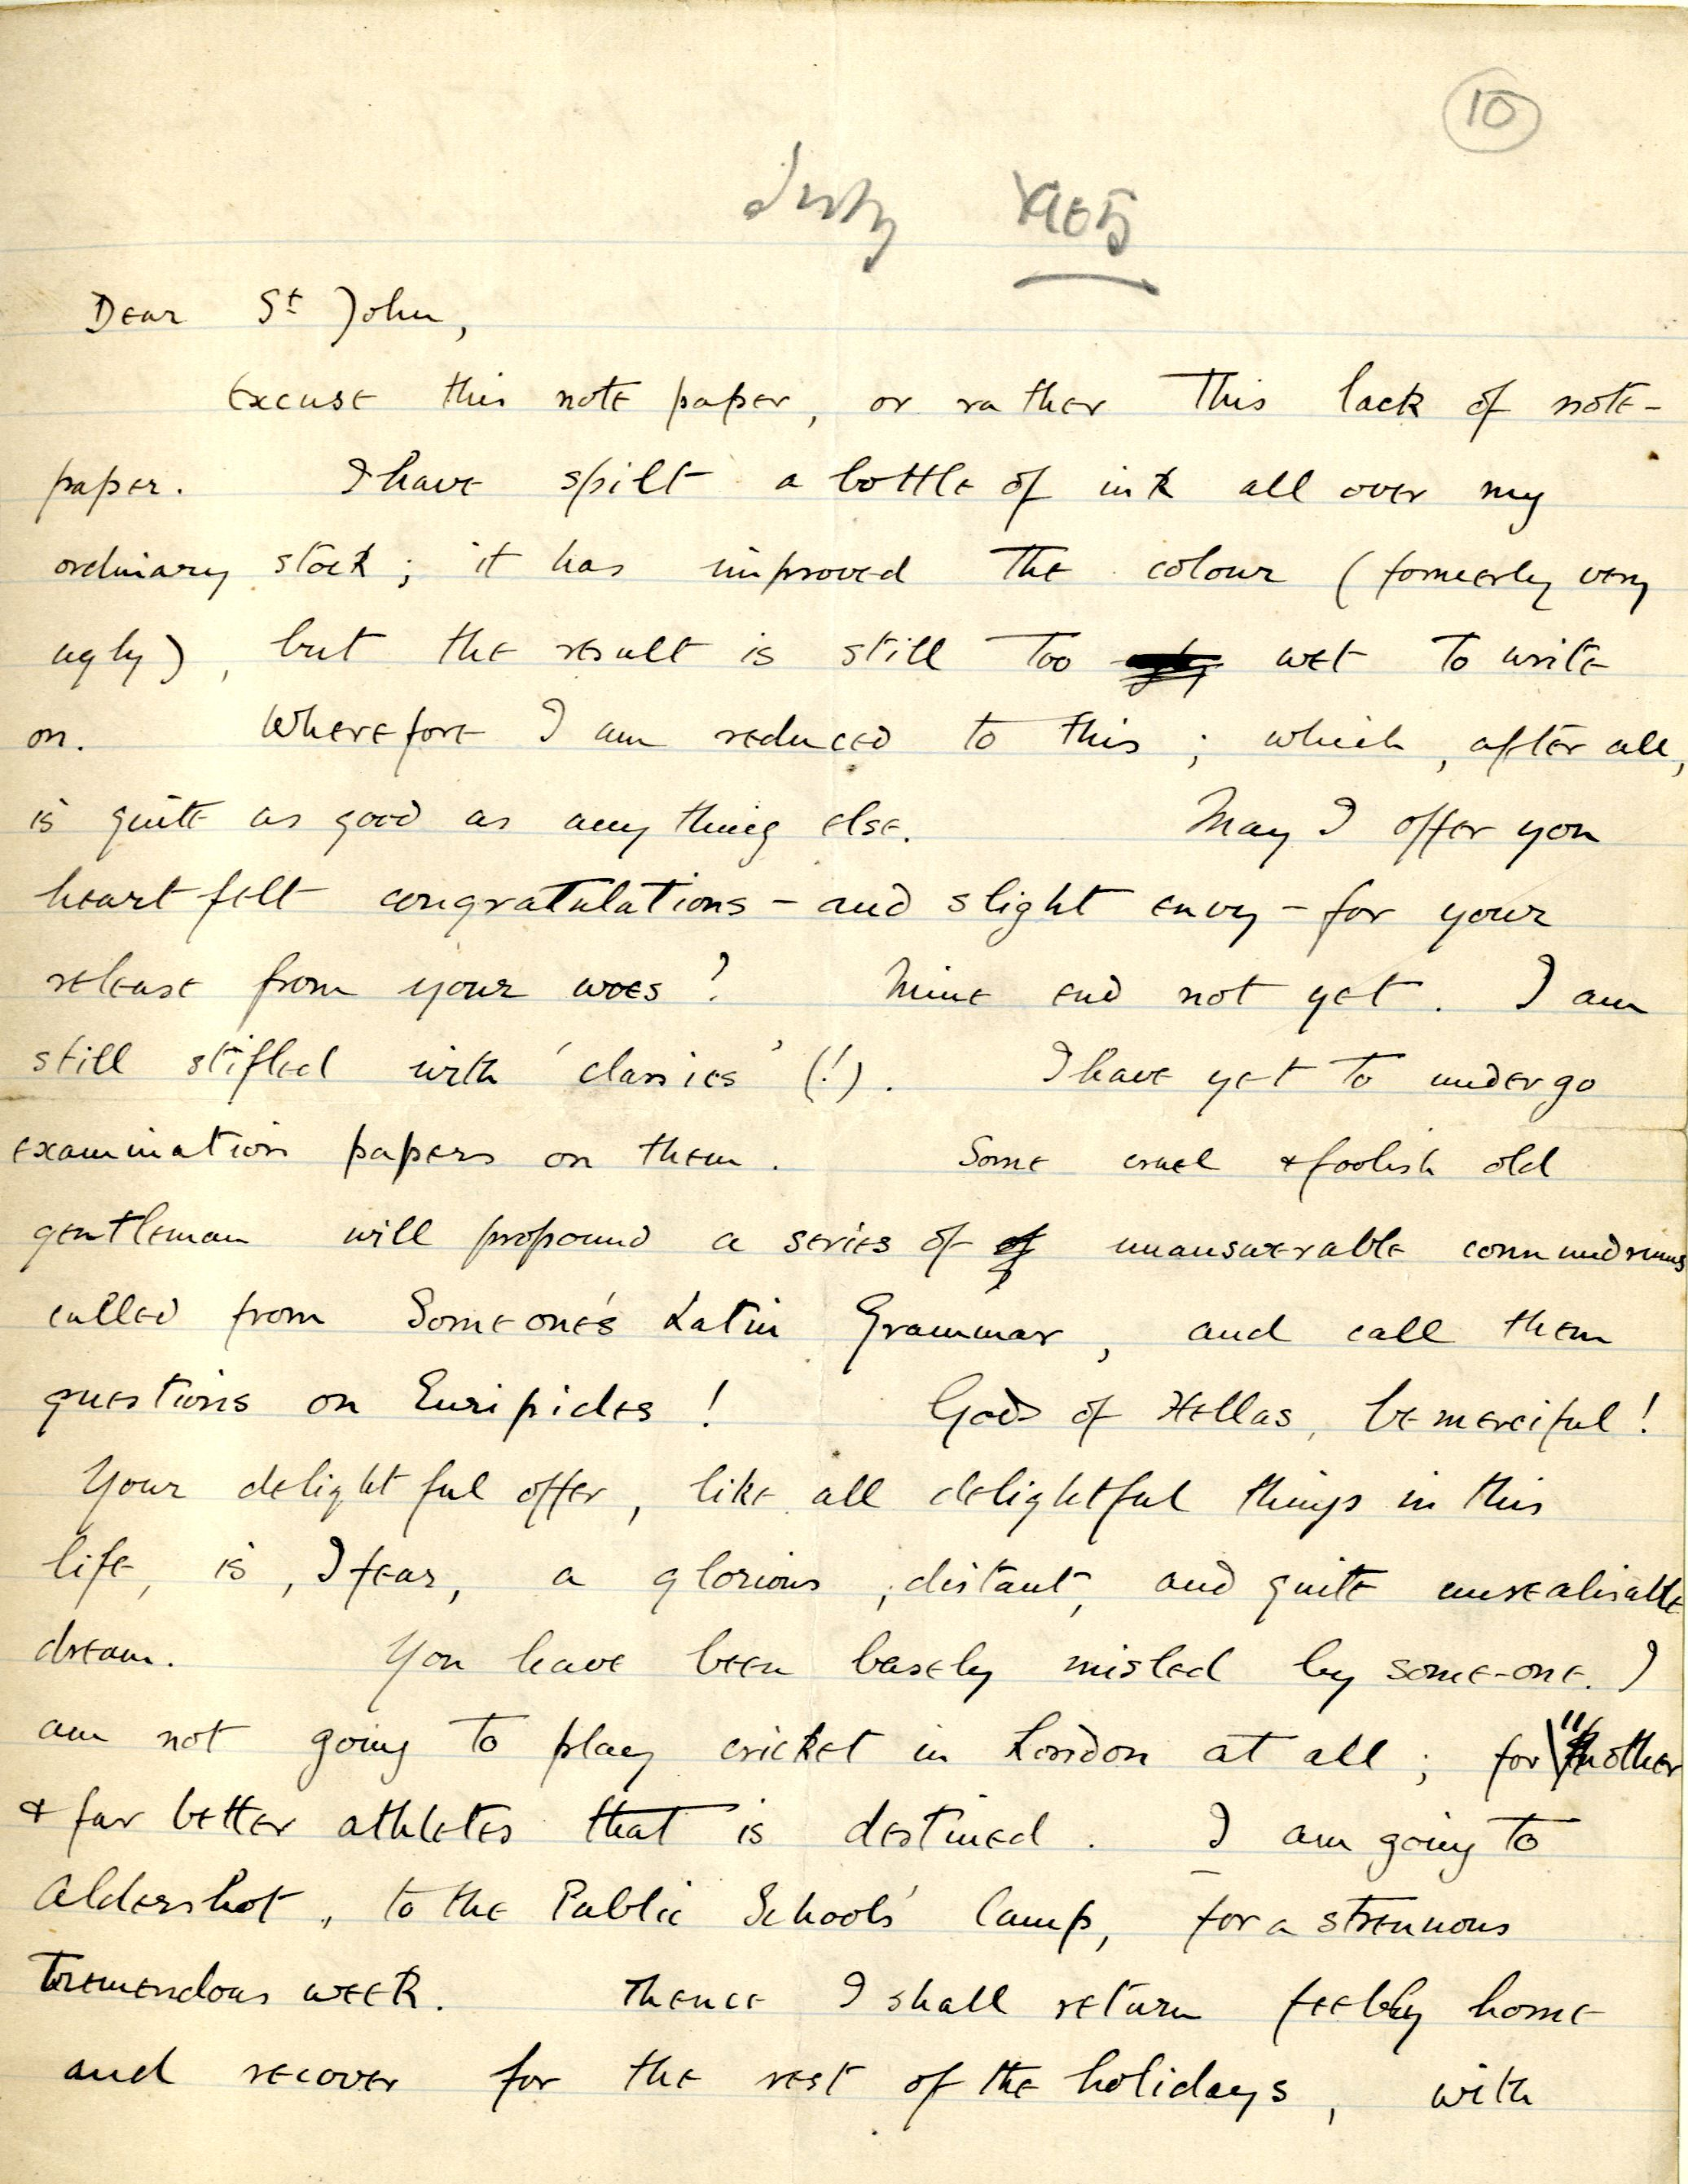 Letter from Rupert Brooke to St John Lucas, July 1905. Archive Centre, King's College, Cambridge. RCB/L/2, letter 10 (first page)